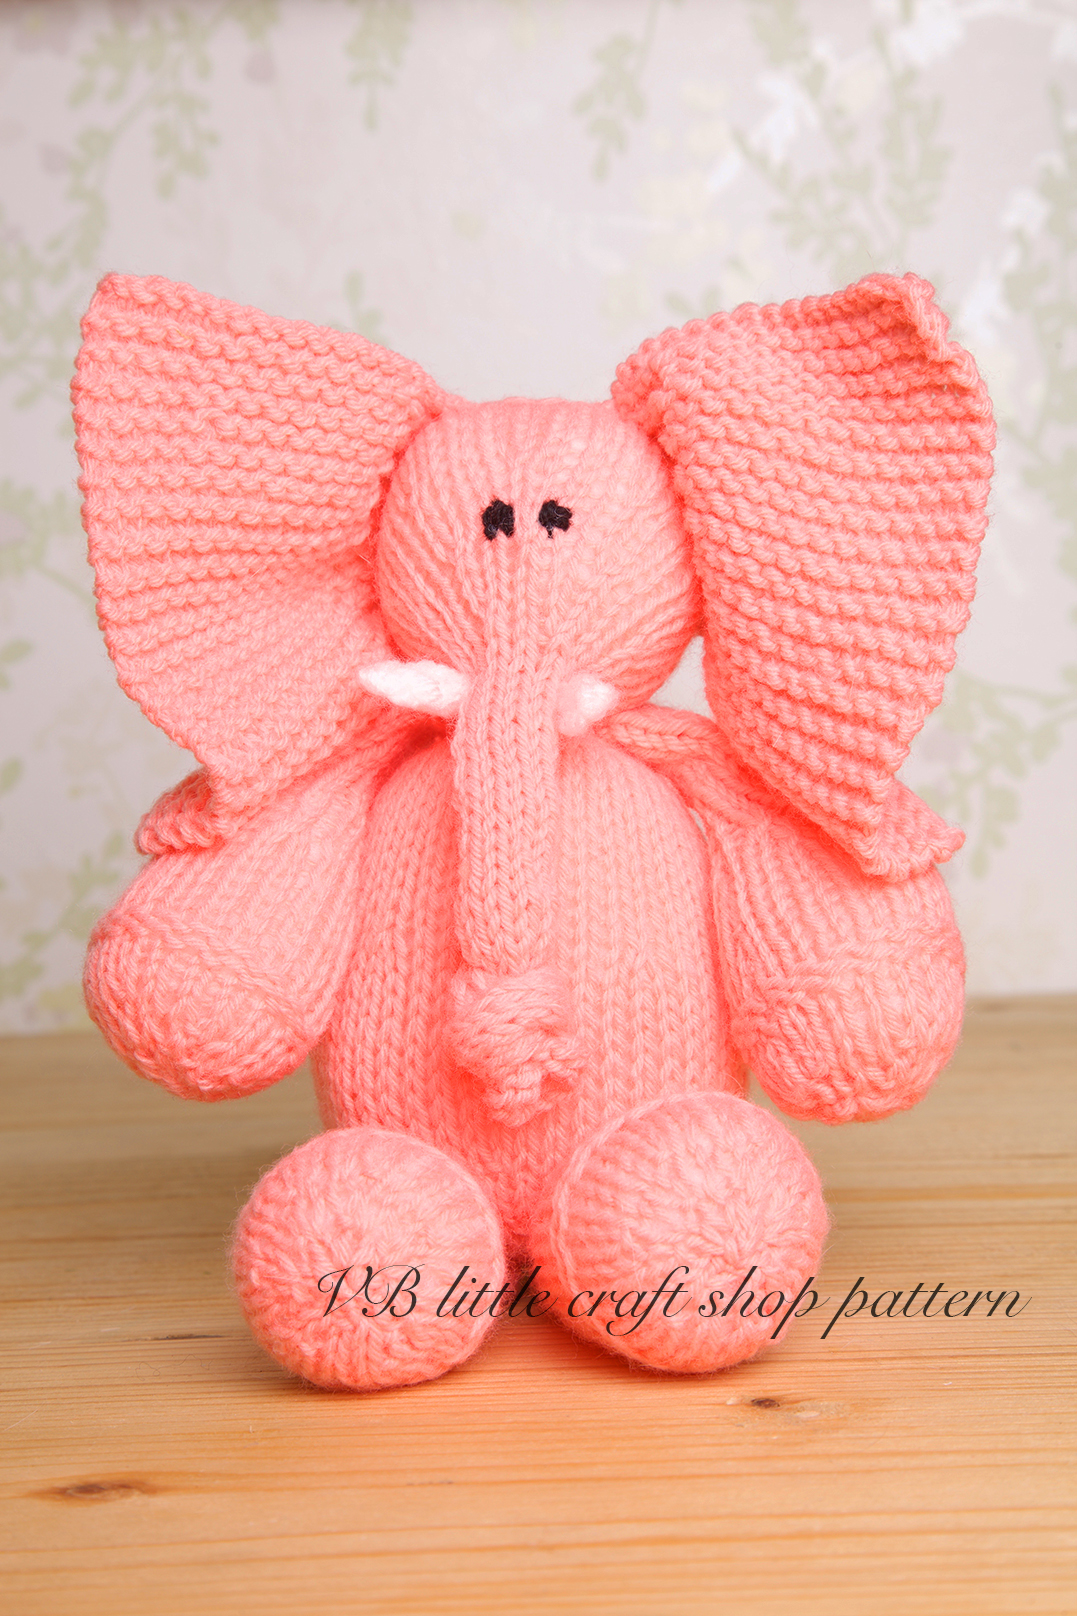 Knitting Patterns For Toy Balls : Elephant Soft Toy Knitting Pattern. One Ball Knit! on Luulla